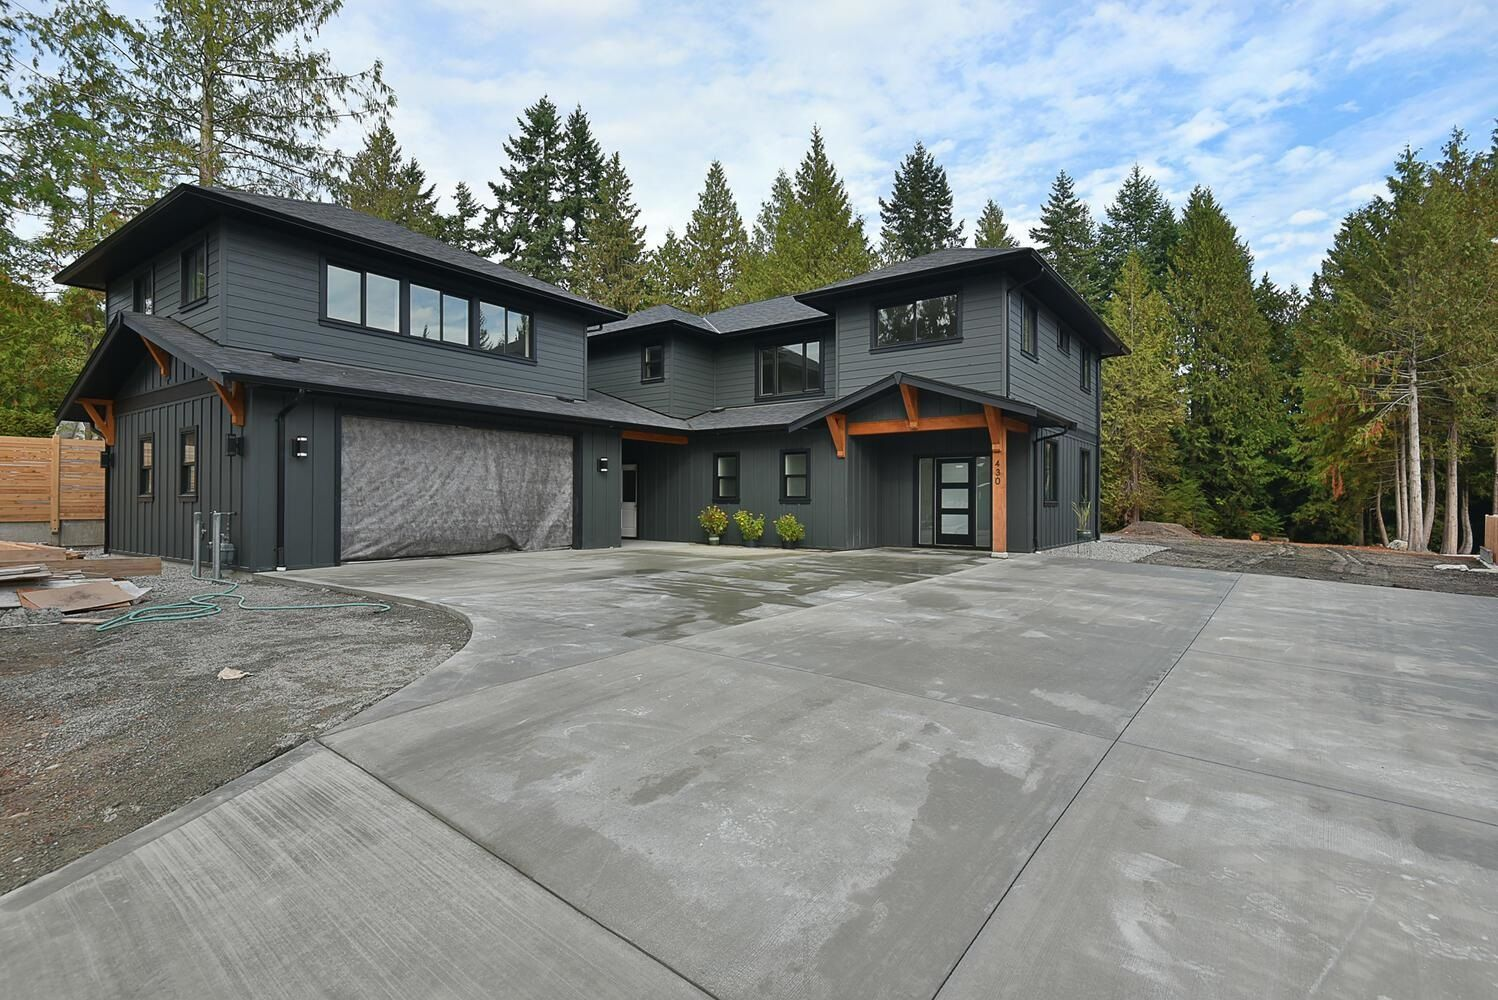 """Main Photo: 430 SOLAZ Place in Gibsons: Gibsons & Area House for sale in """"GEORGIA CREST"""" (Sunshine Coast)  : MLS®# R2623766"""